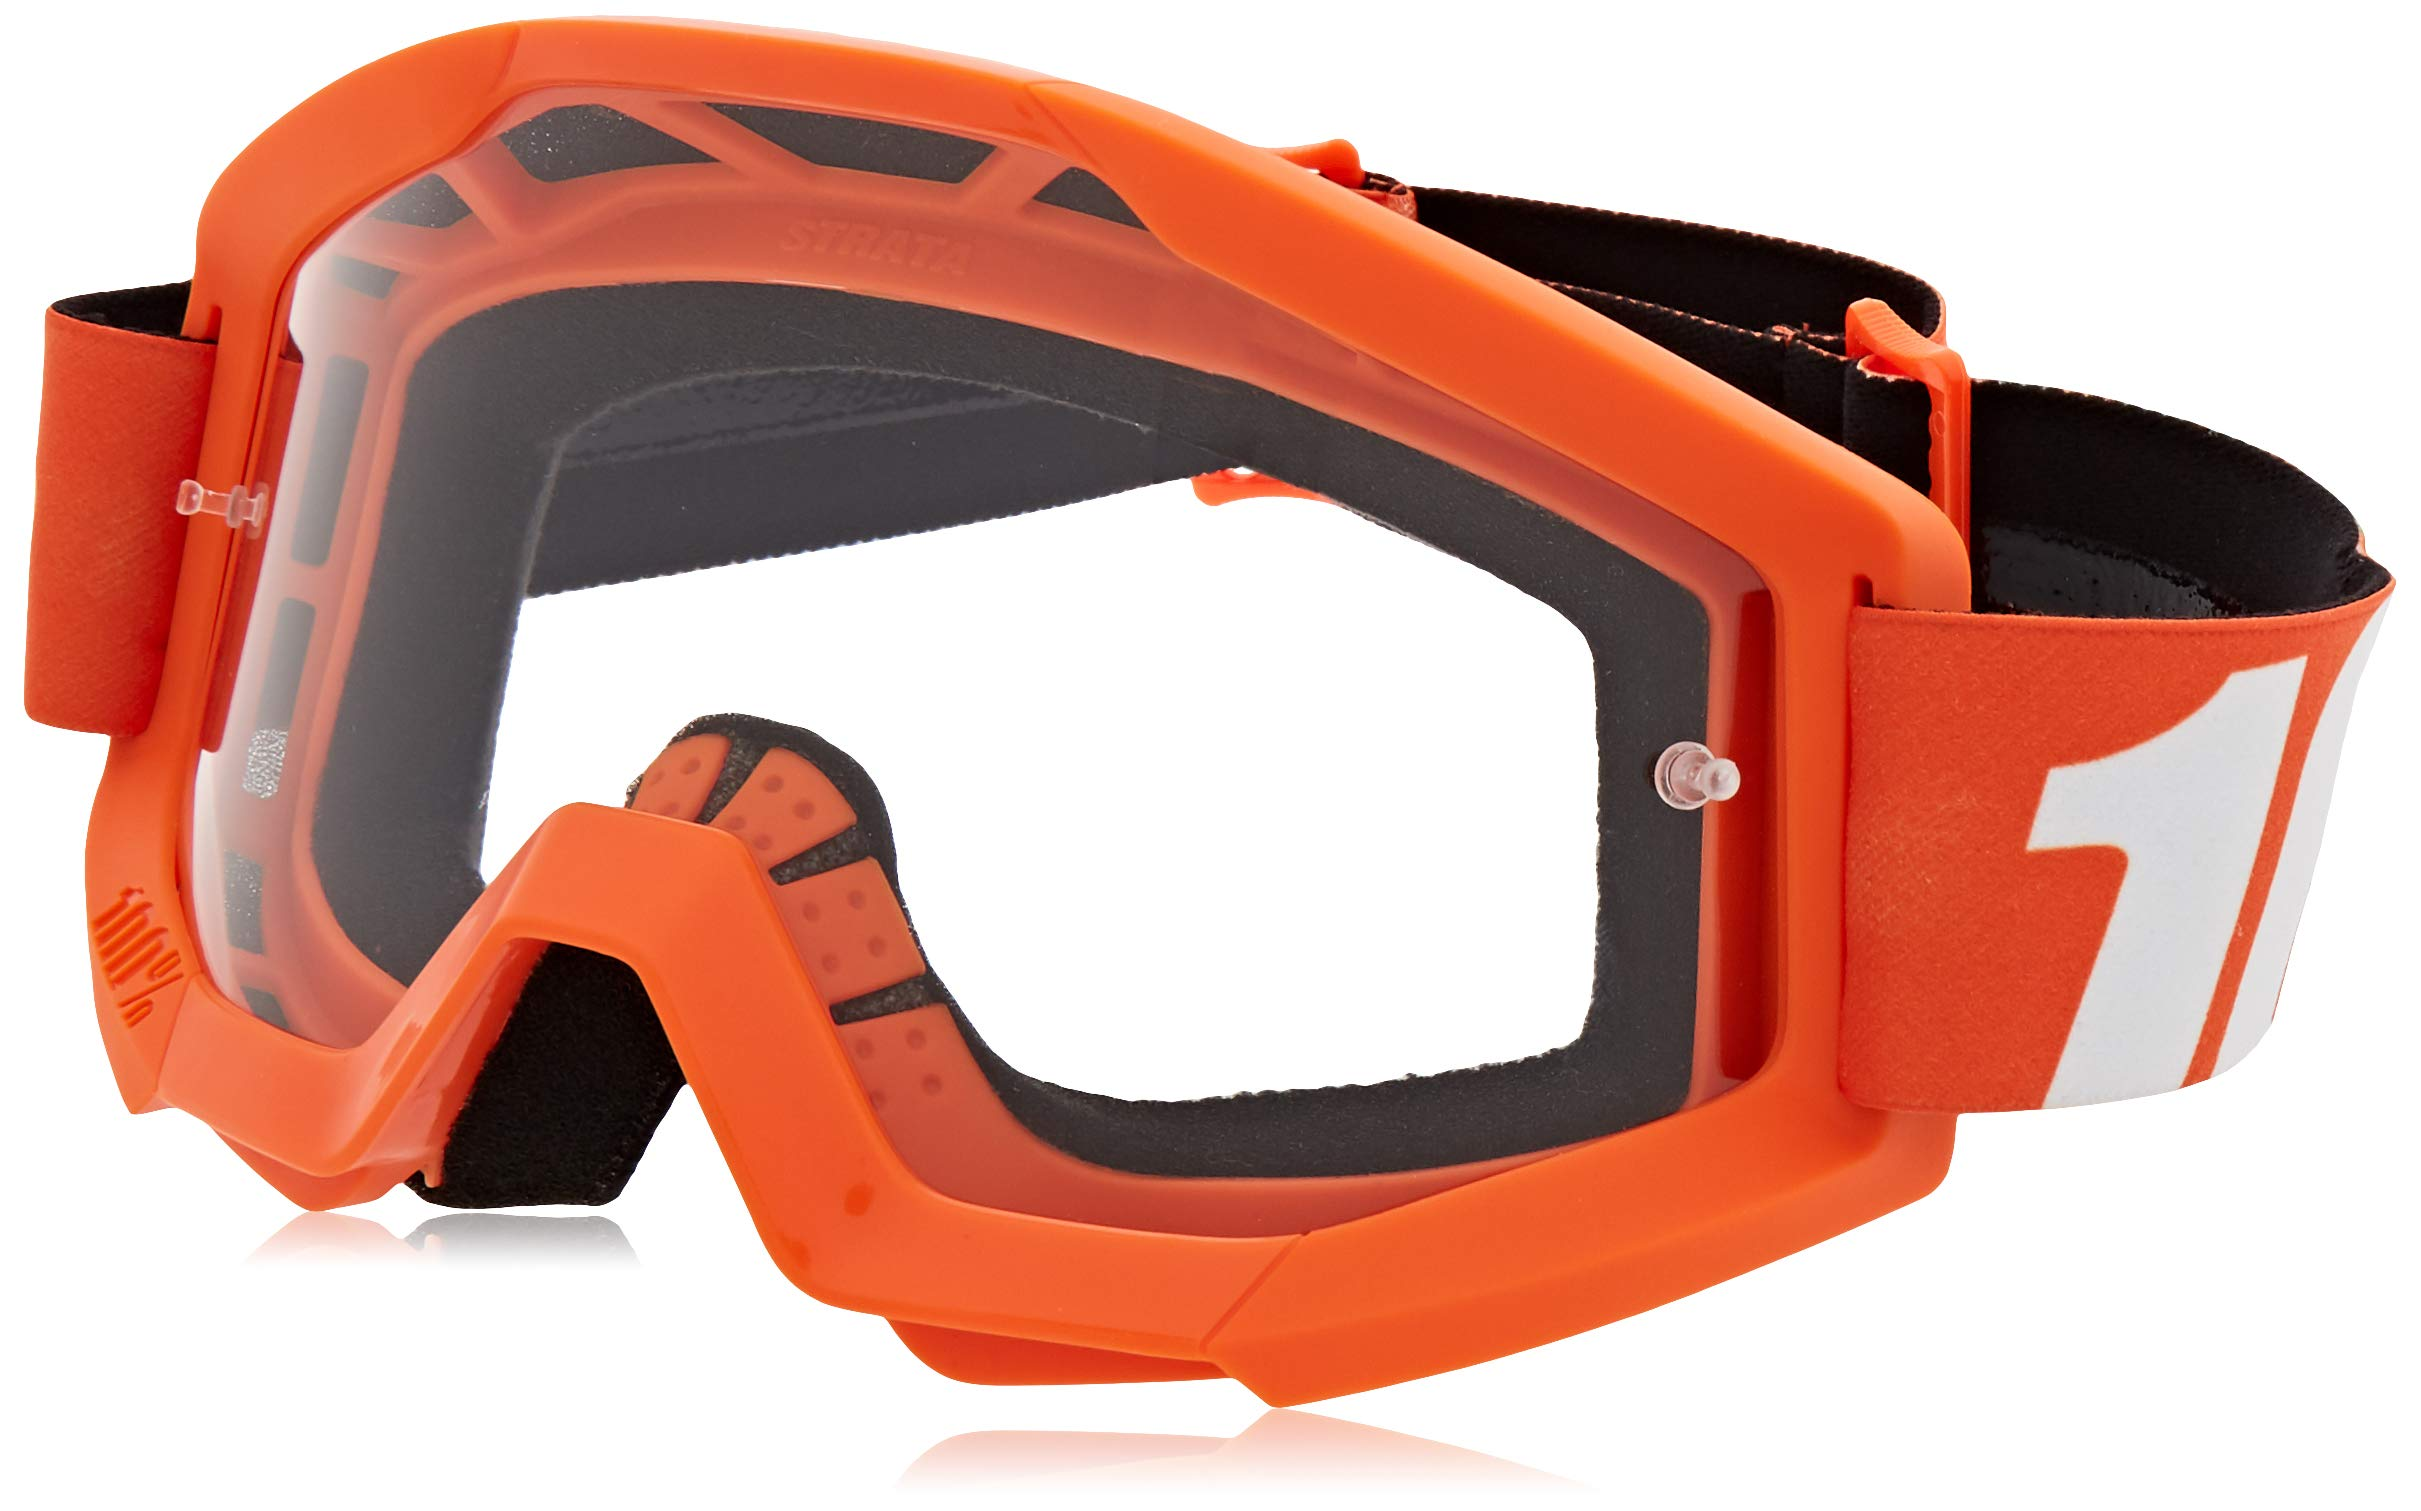 100% STRATA Goggles Orange - Clear Lens, One Size by 100%